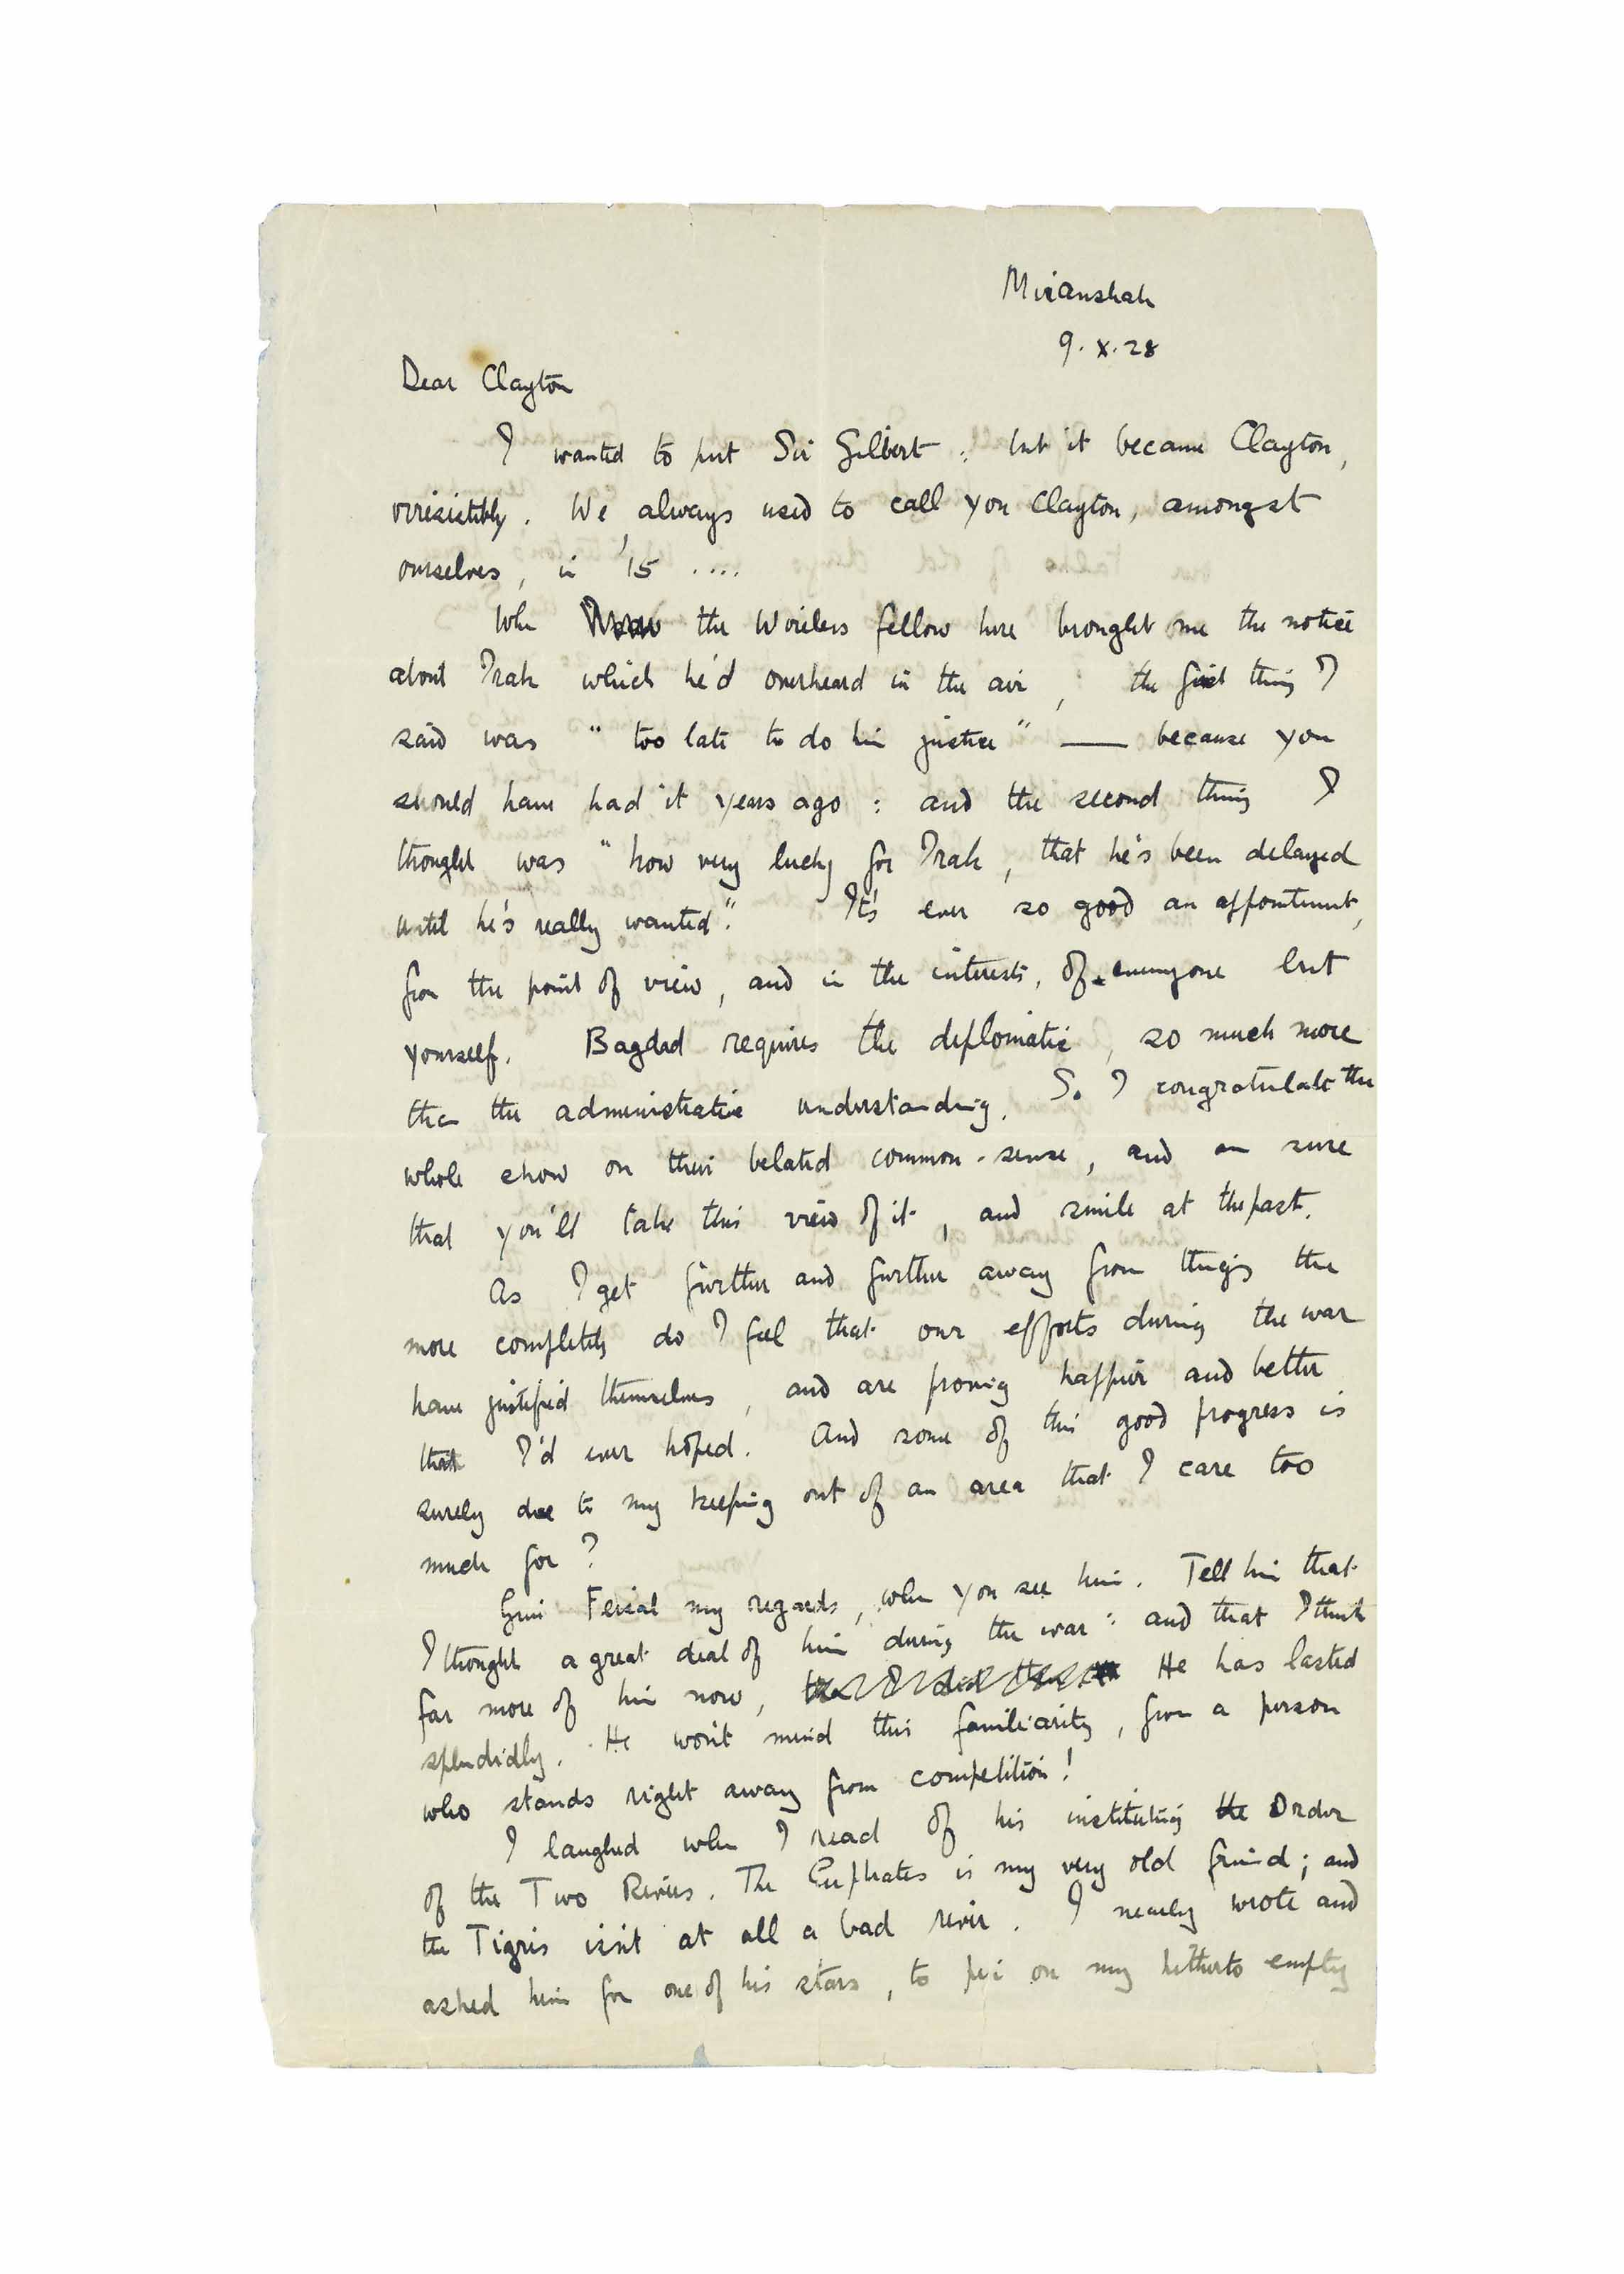 LAWRENCE, Thomas Edward (1888-1935). Autograph letter signed ('T.E. Shaw') to General Sir Gilbert Clayton, Miranshah, 9 October 1928, 2 pages, folio. Provenance: the Spiro Family Collection; Christie's, 25 September 2008, lot 115.